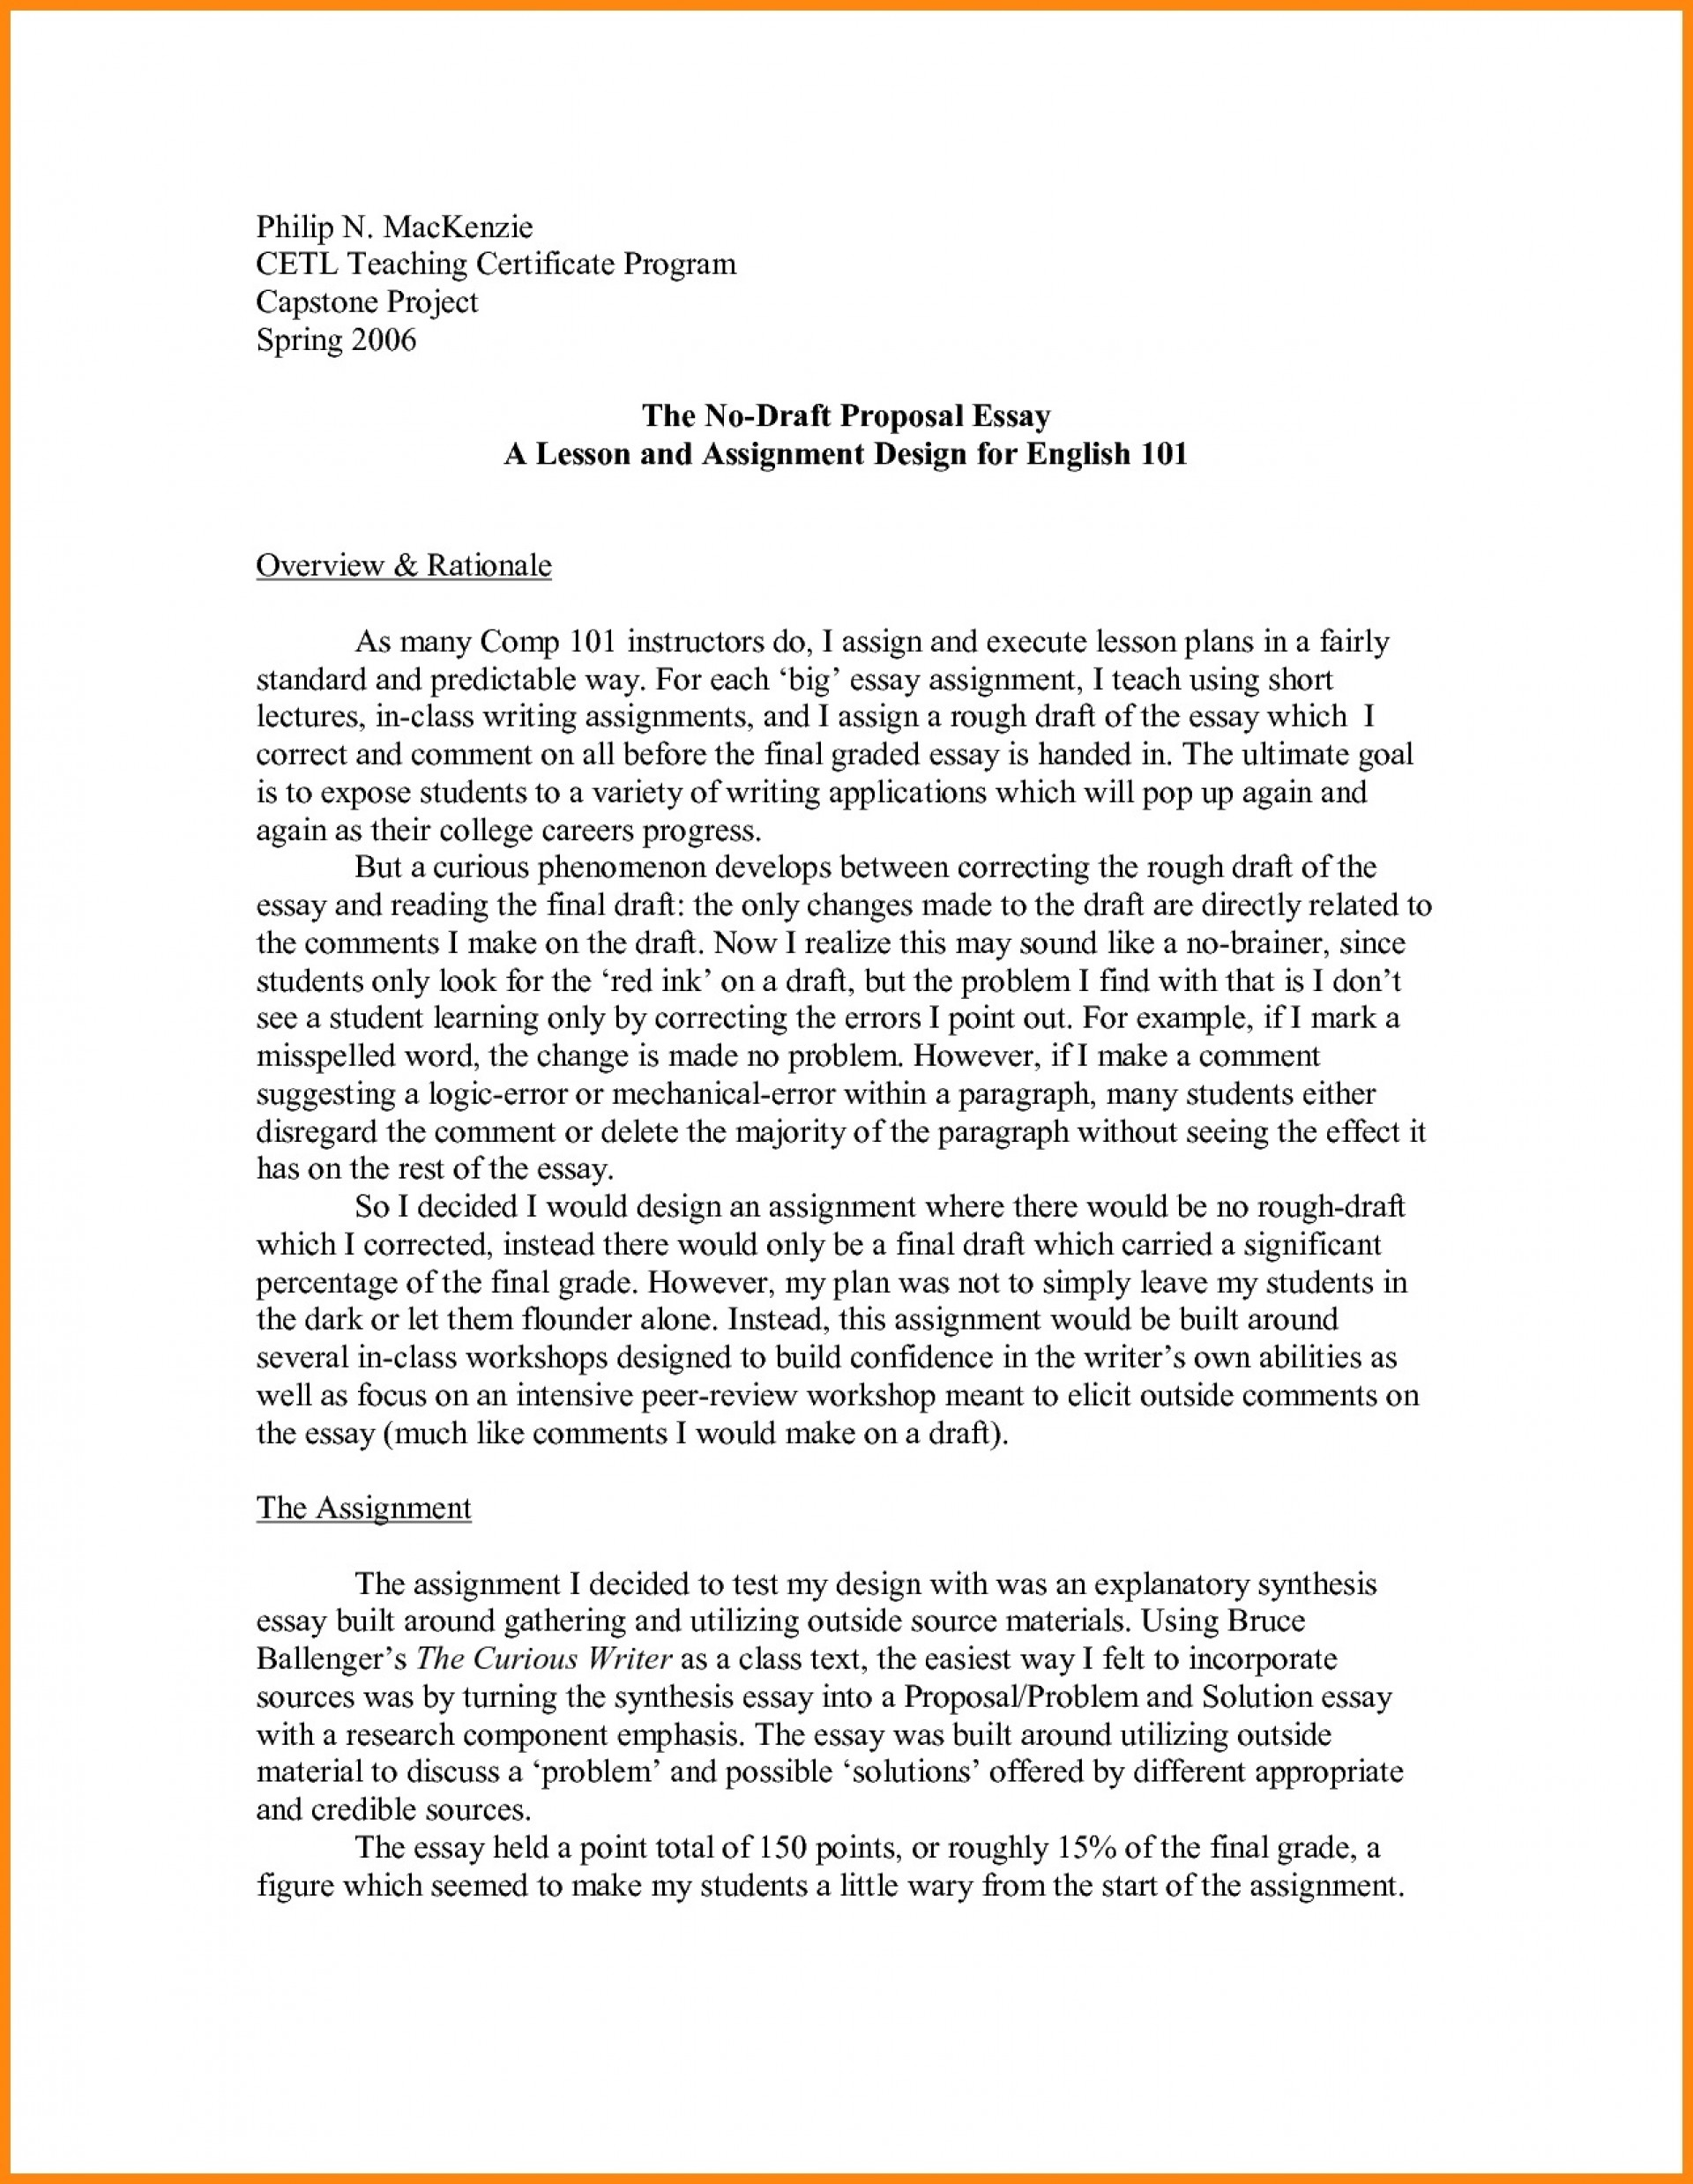 019 Research Paper Papers Topics For Finance Topic Proposal Example Essay At Phenomenal High School Students In Management 1920